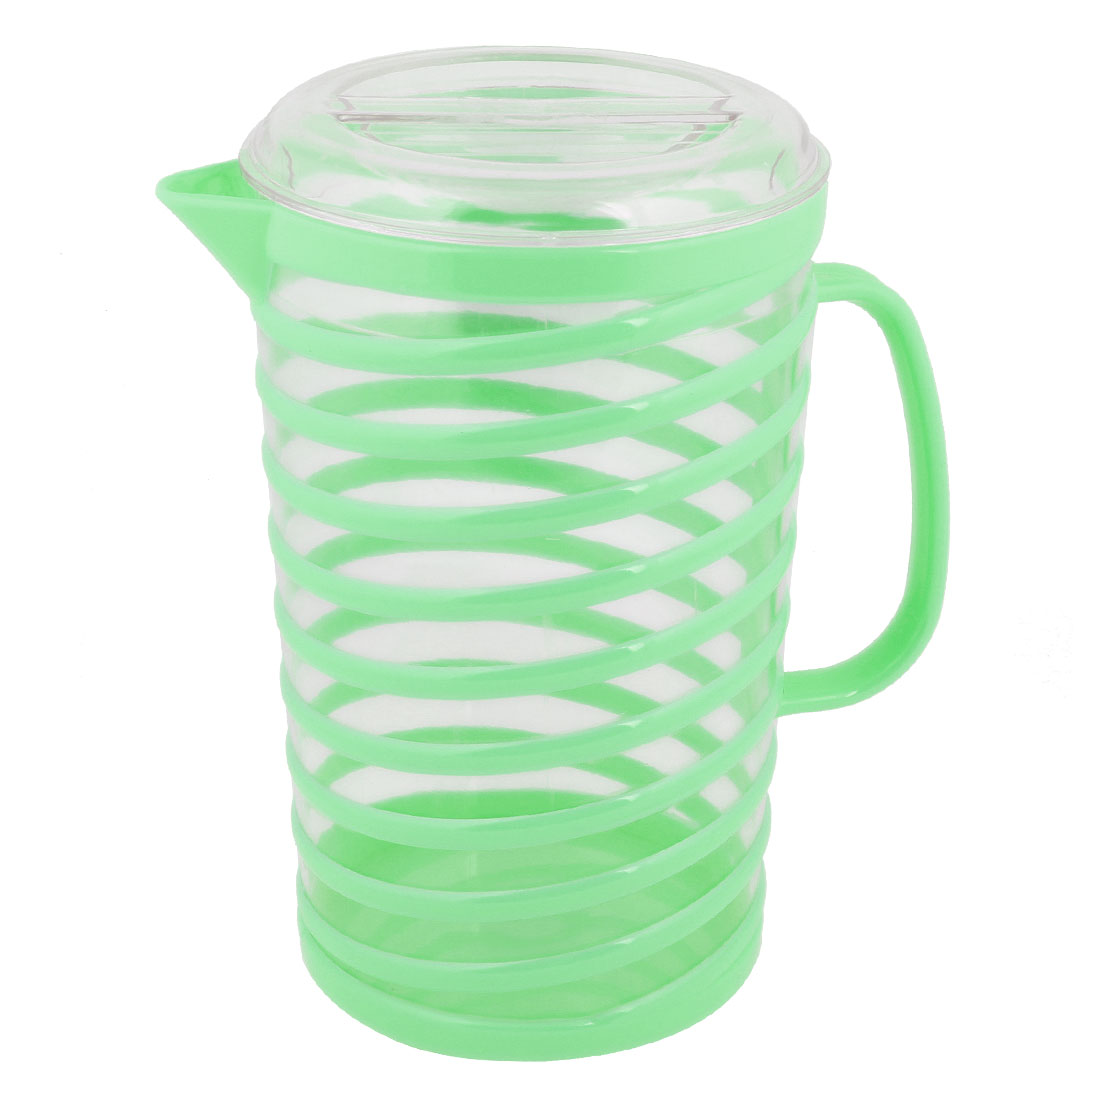 Light Green Clear Plastic Shell 1800ml Capacity Cooler Water Pitcher Holder